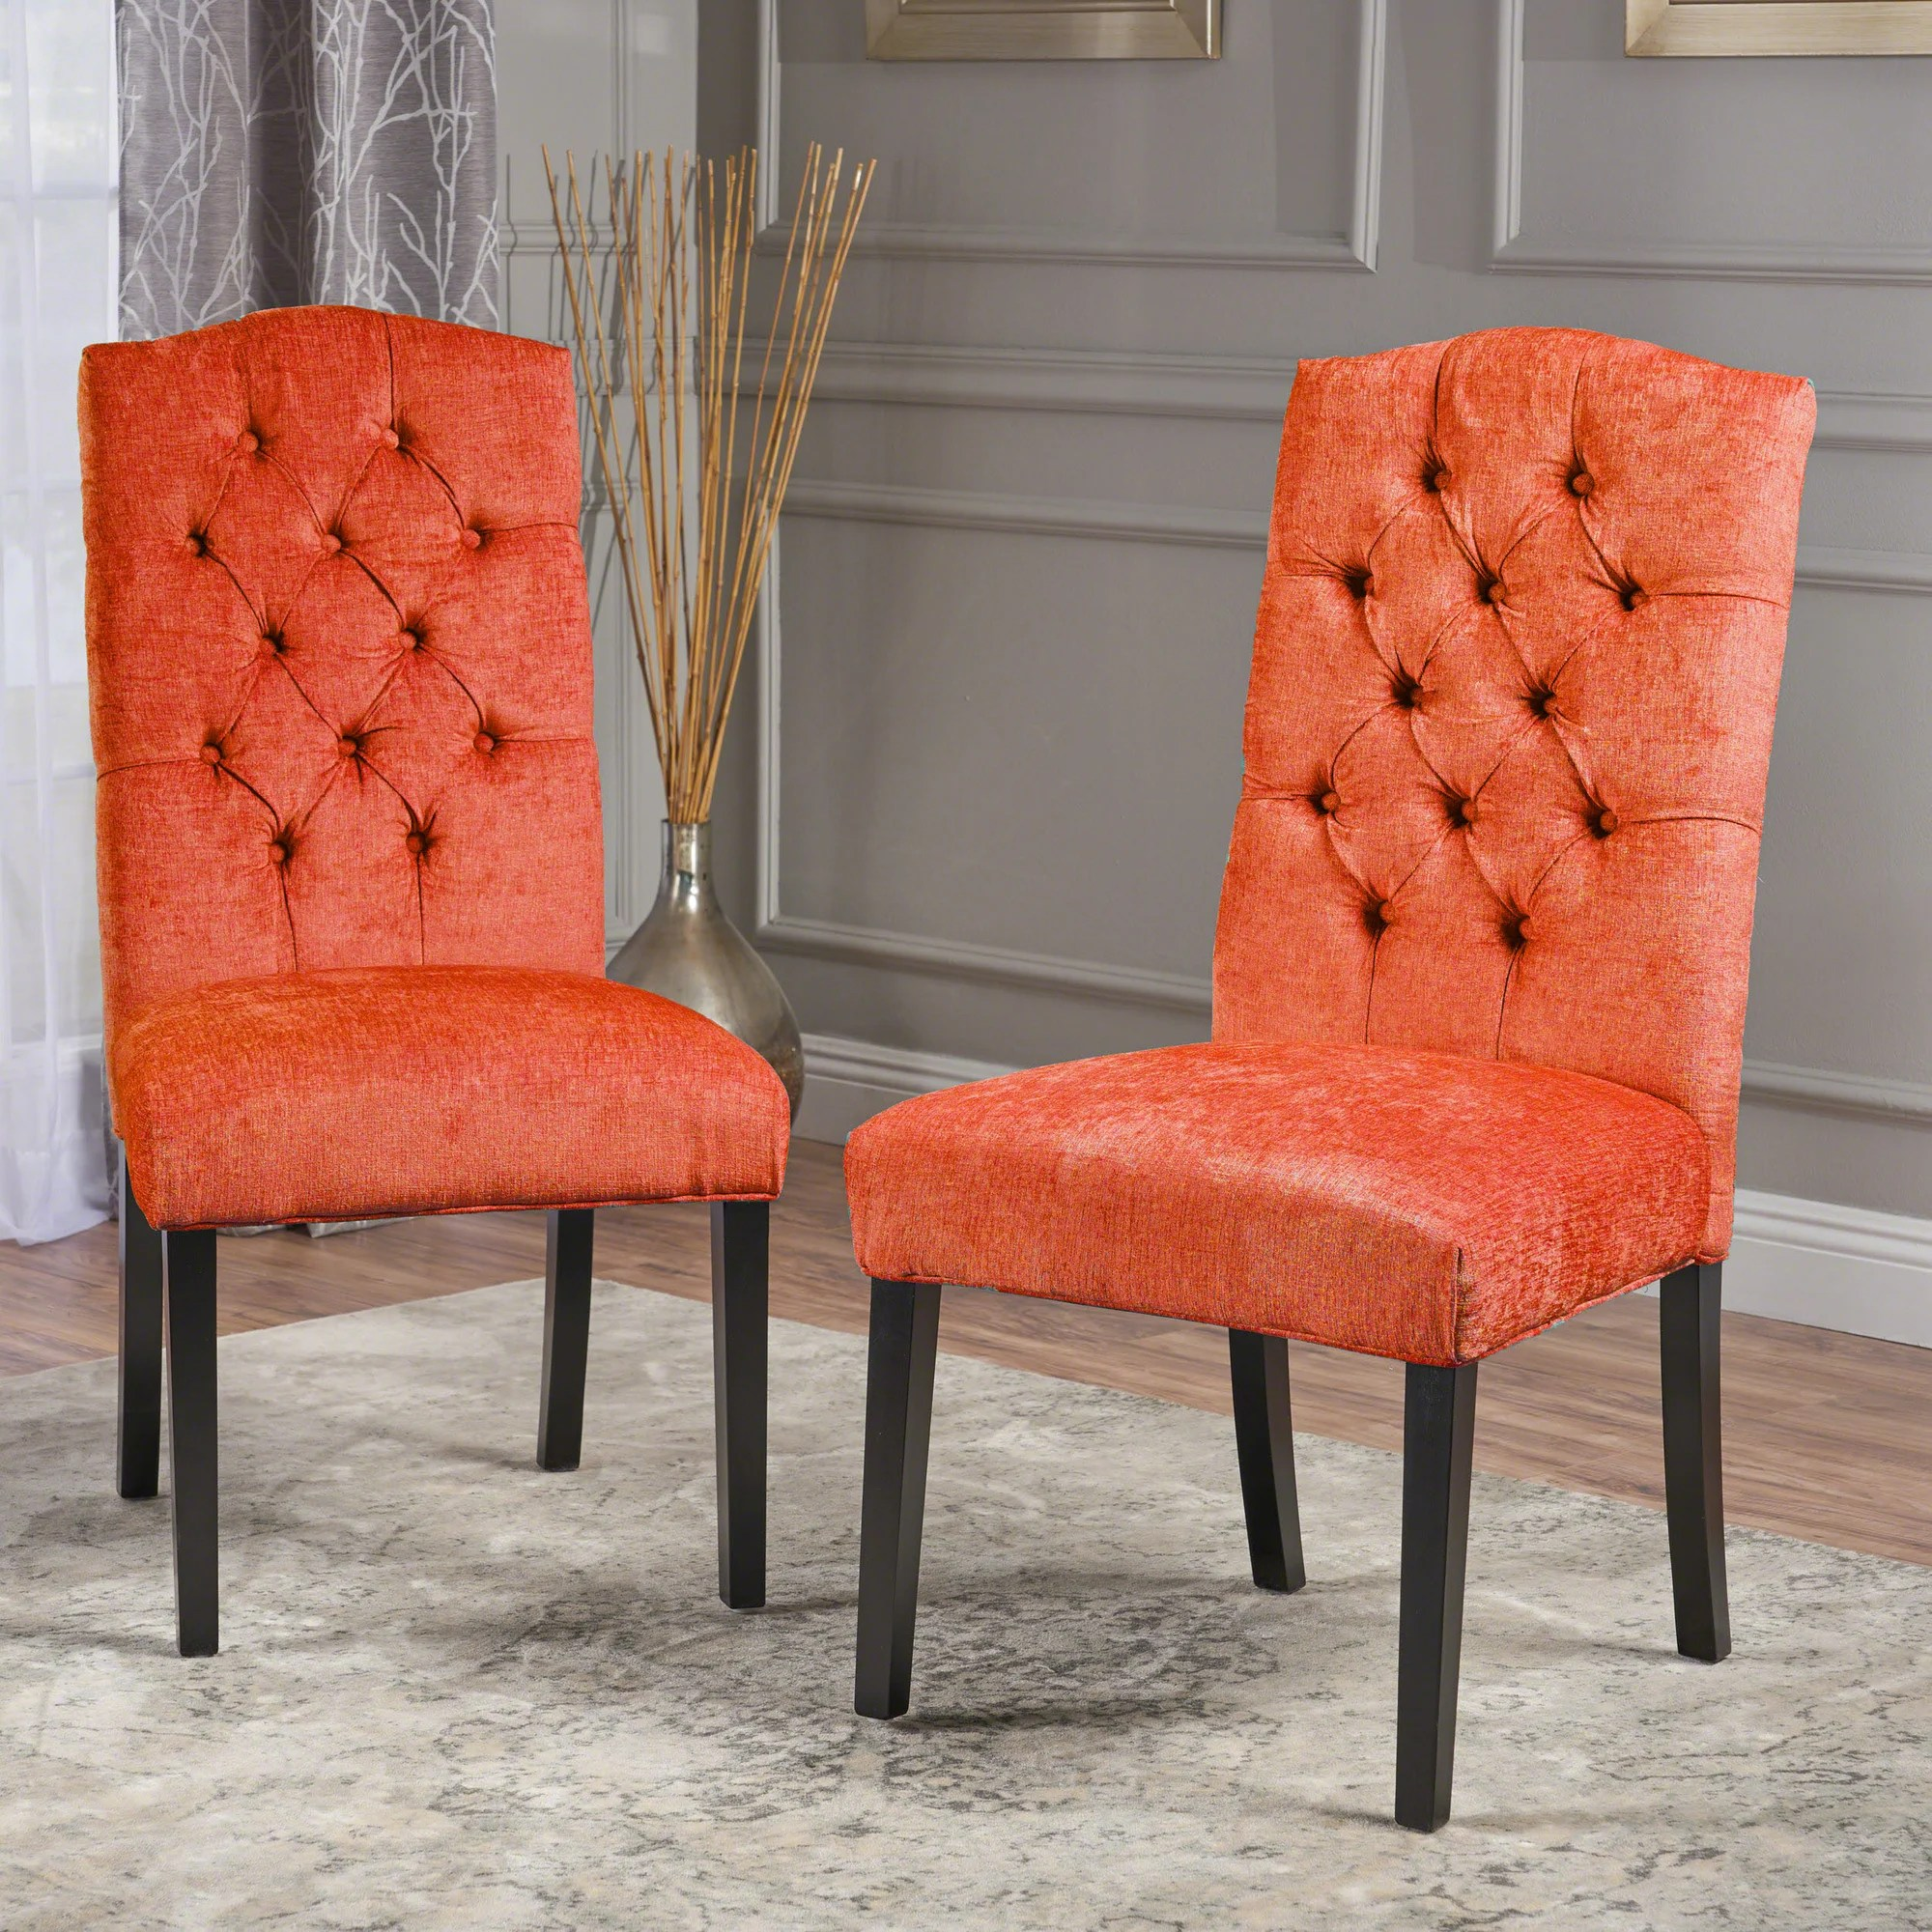 Red Upholstered Dining Chairs Details About Darby Home Co Radley Upholstered Dining Chair Red Set Of 2